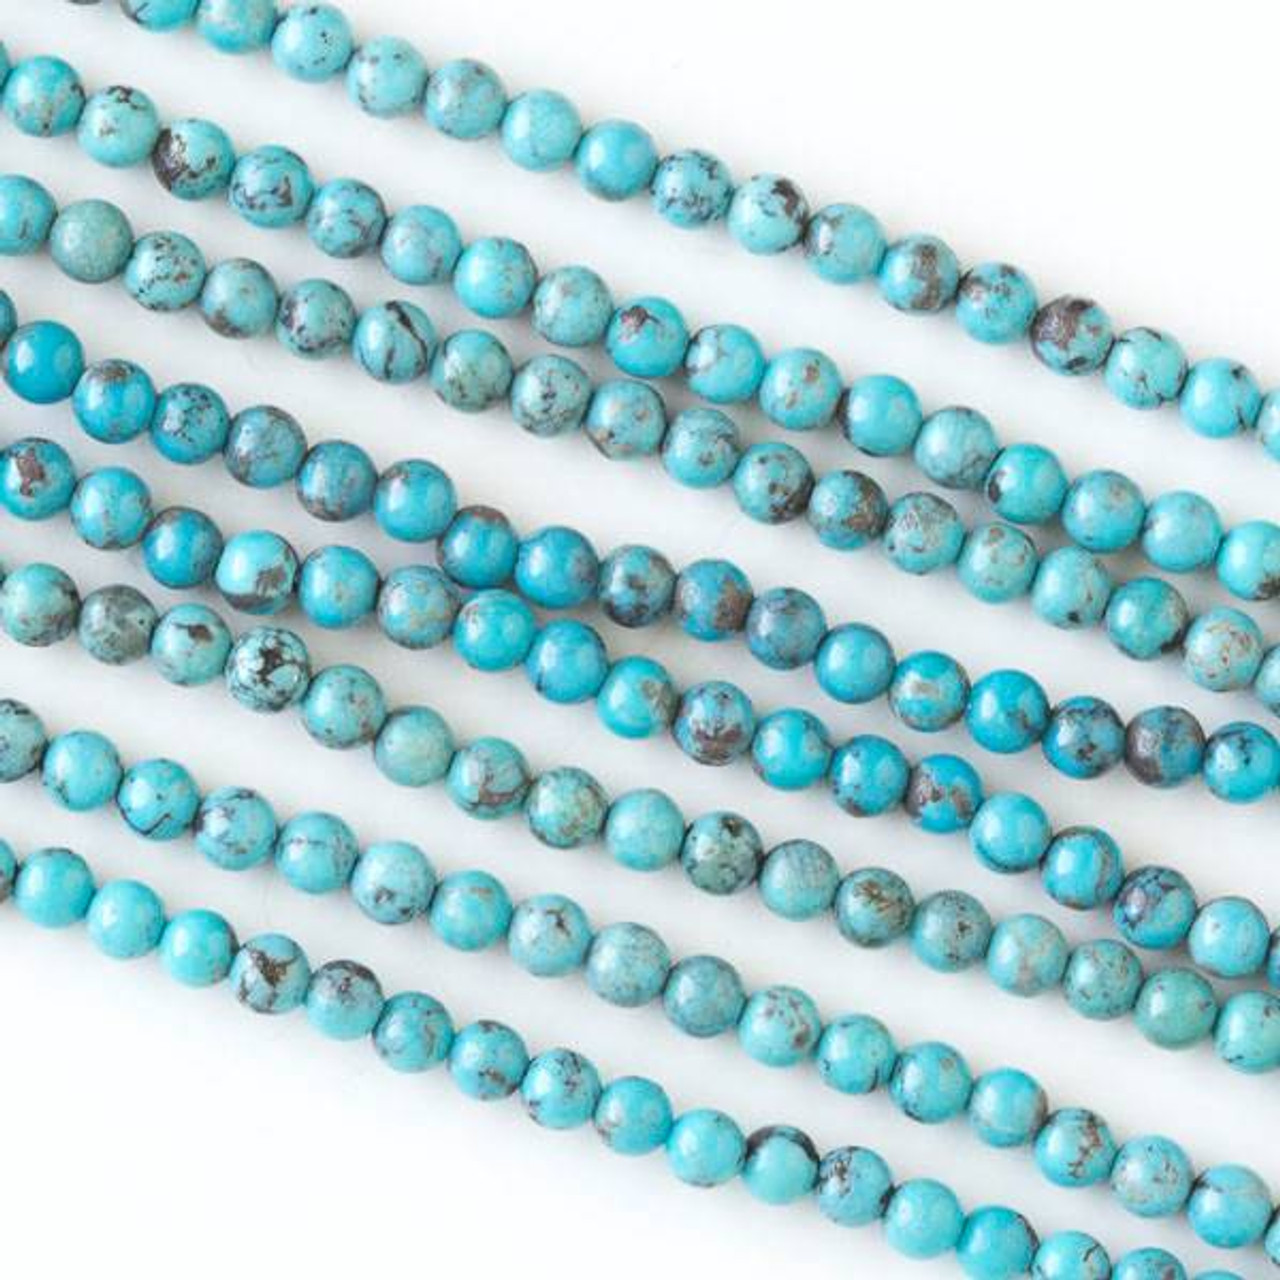 4mm MIDNIGHT BLUE GREY Rondelle Crystal beads fct Transparent 145 beads bgl1544